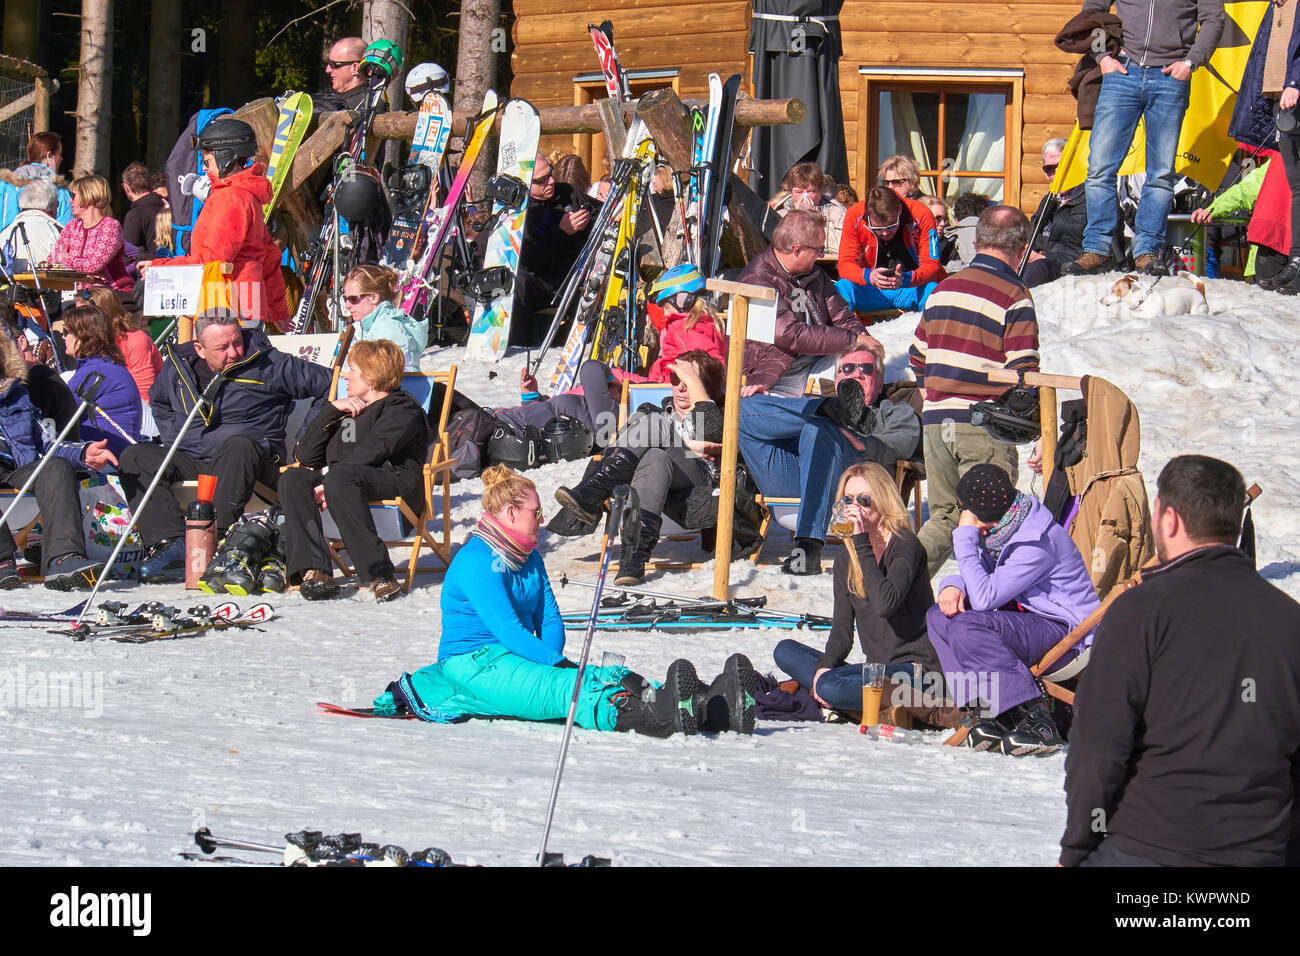 WINTERBERG, GERMANY - FEBRUARY 15, 2017: People sitting, drinking and relaxing  at Ski Carousel Winterberg - Stock Image